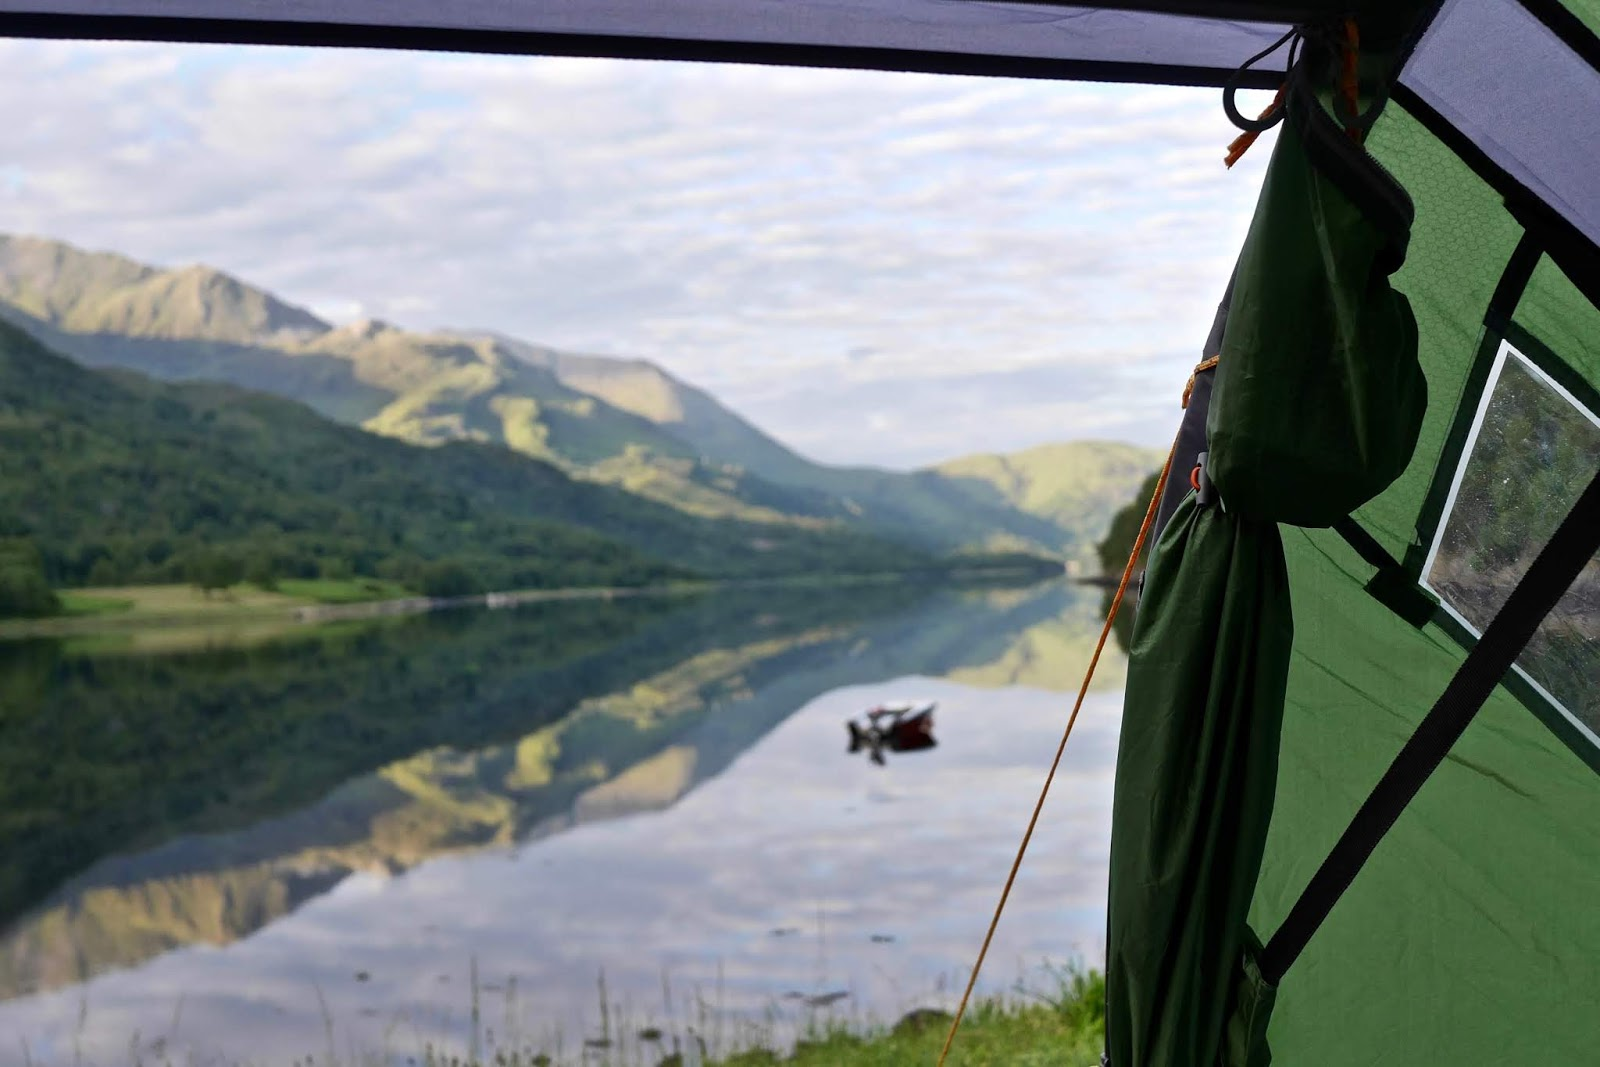 Camping in Glencoe, Campsites in scotland that allow fires